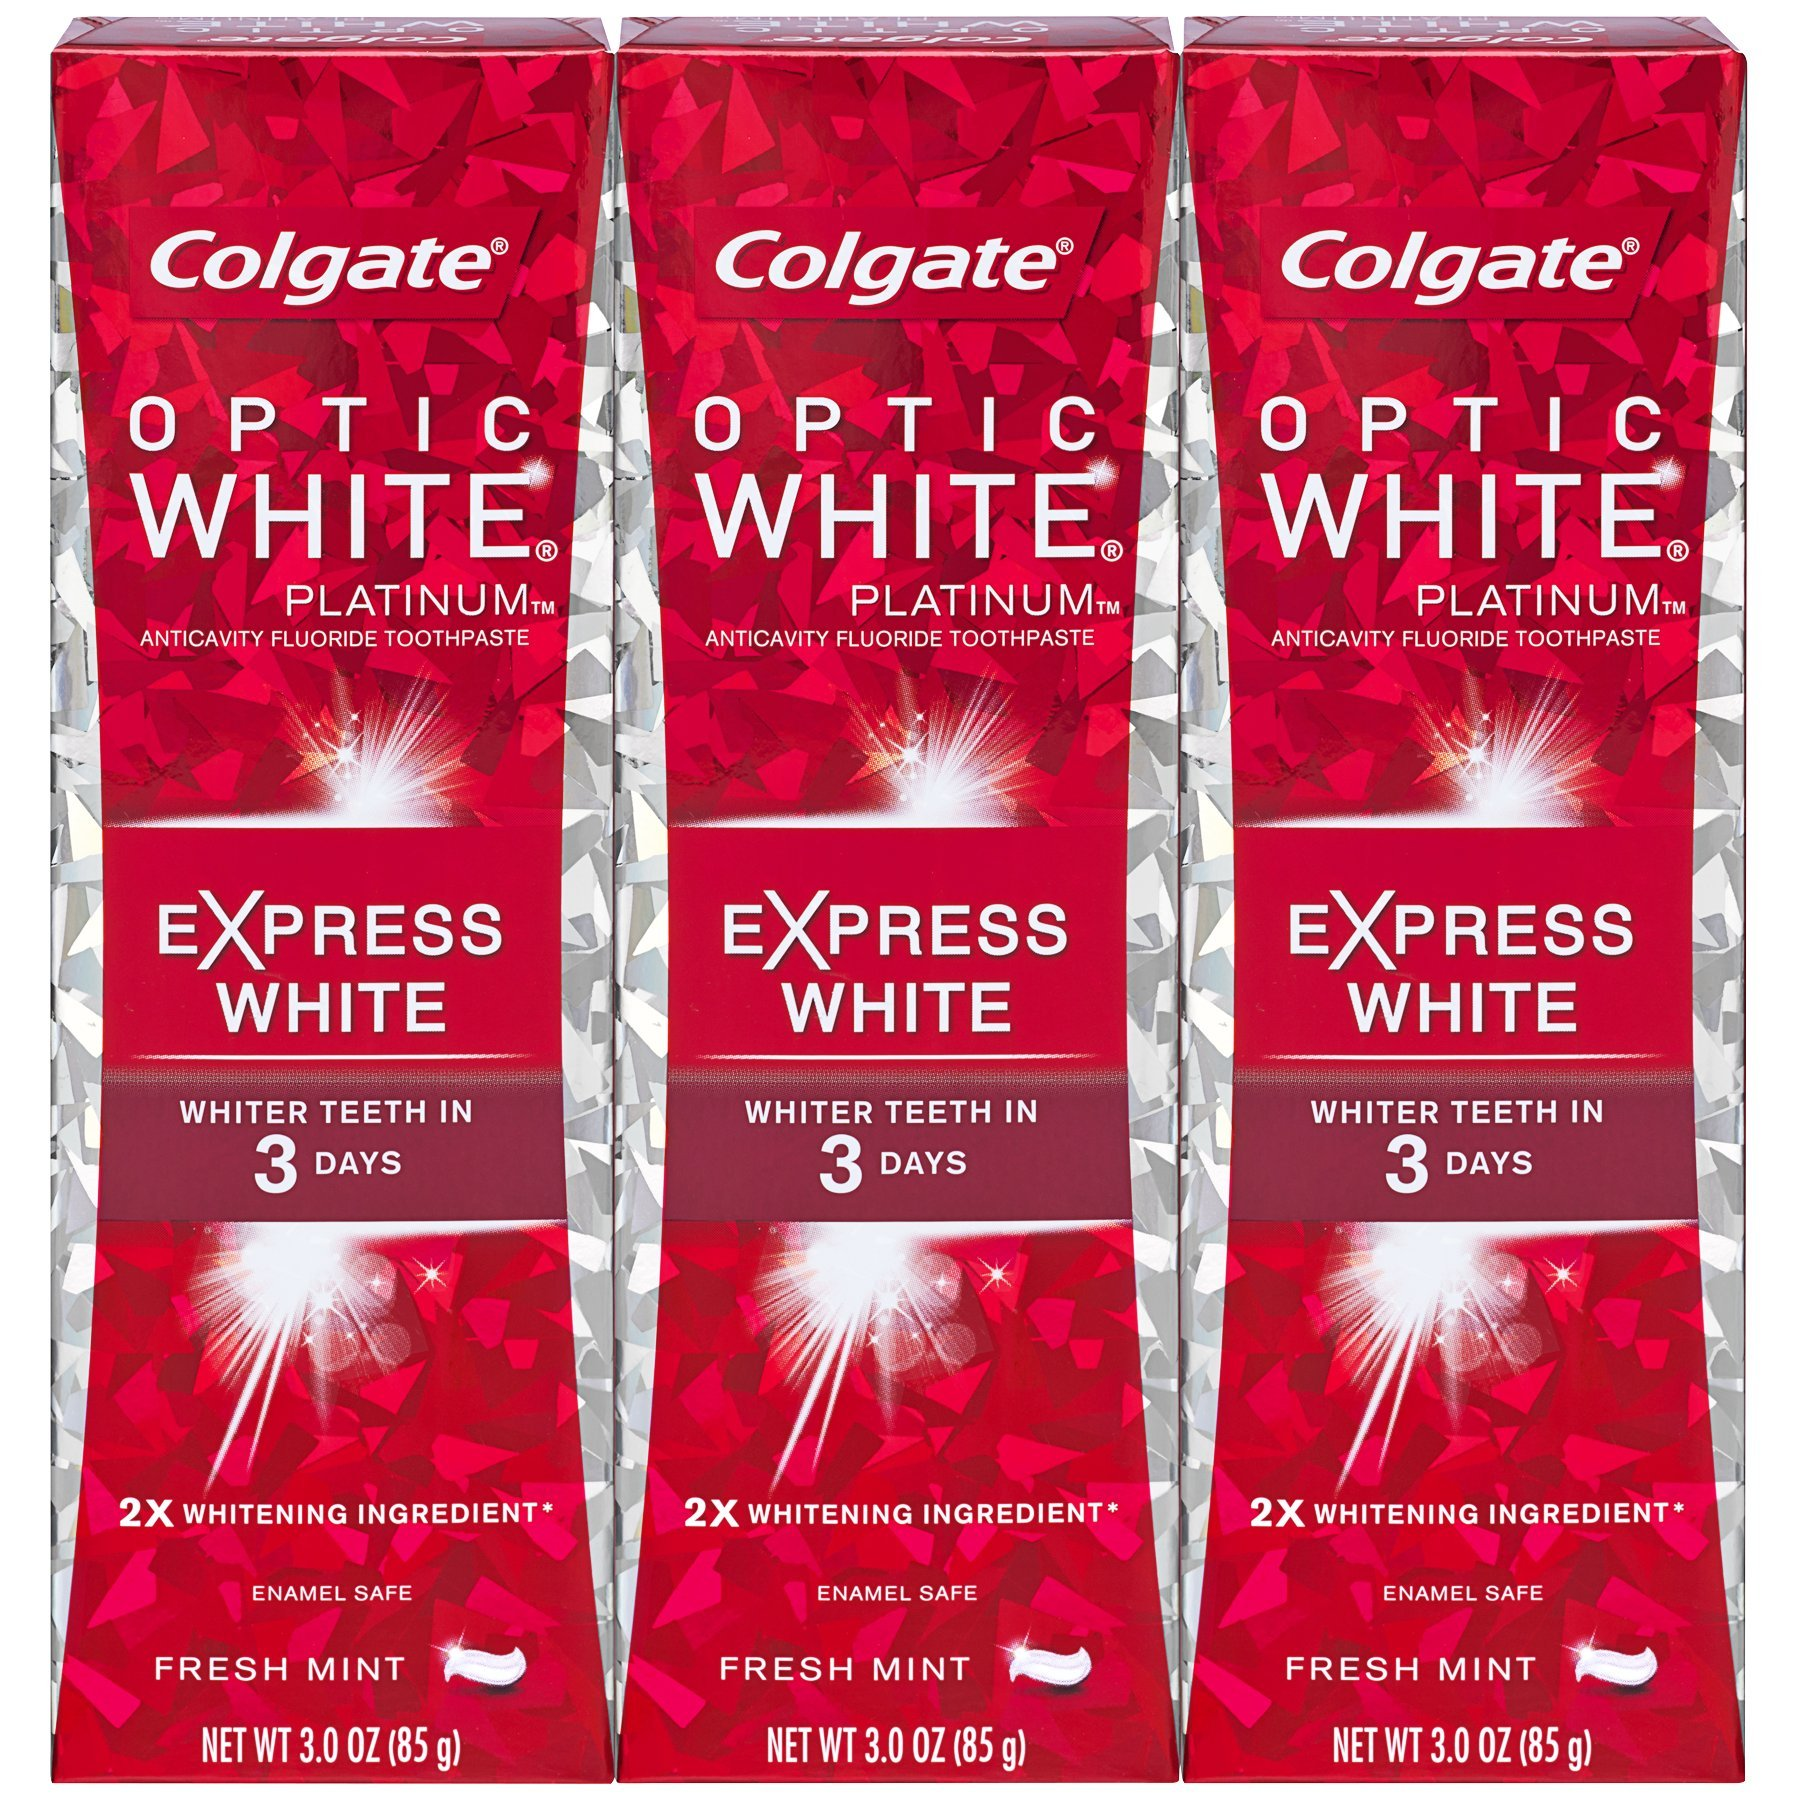 Colgate Optic White Express White Whitening Toothpaste - 3 ounce (3 Pack) by Colgate (Image #1)